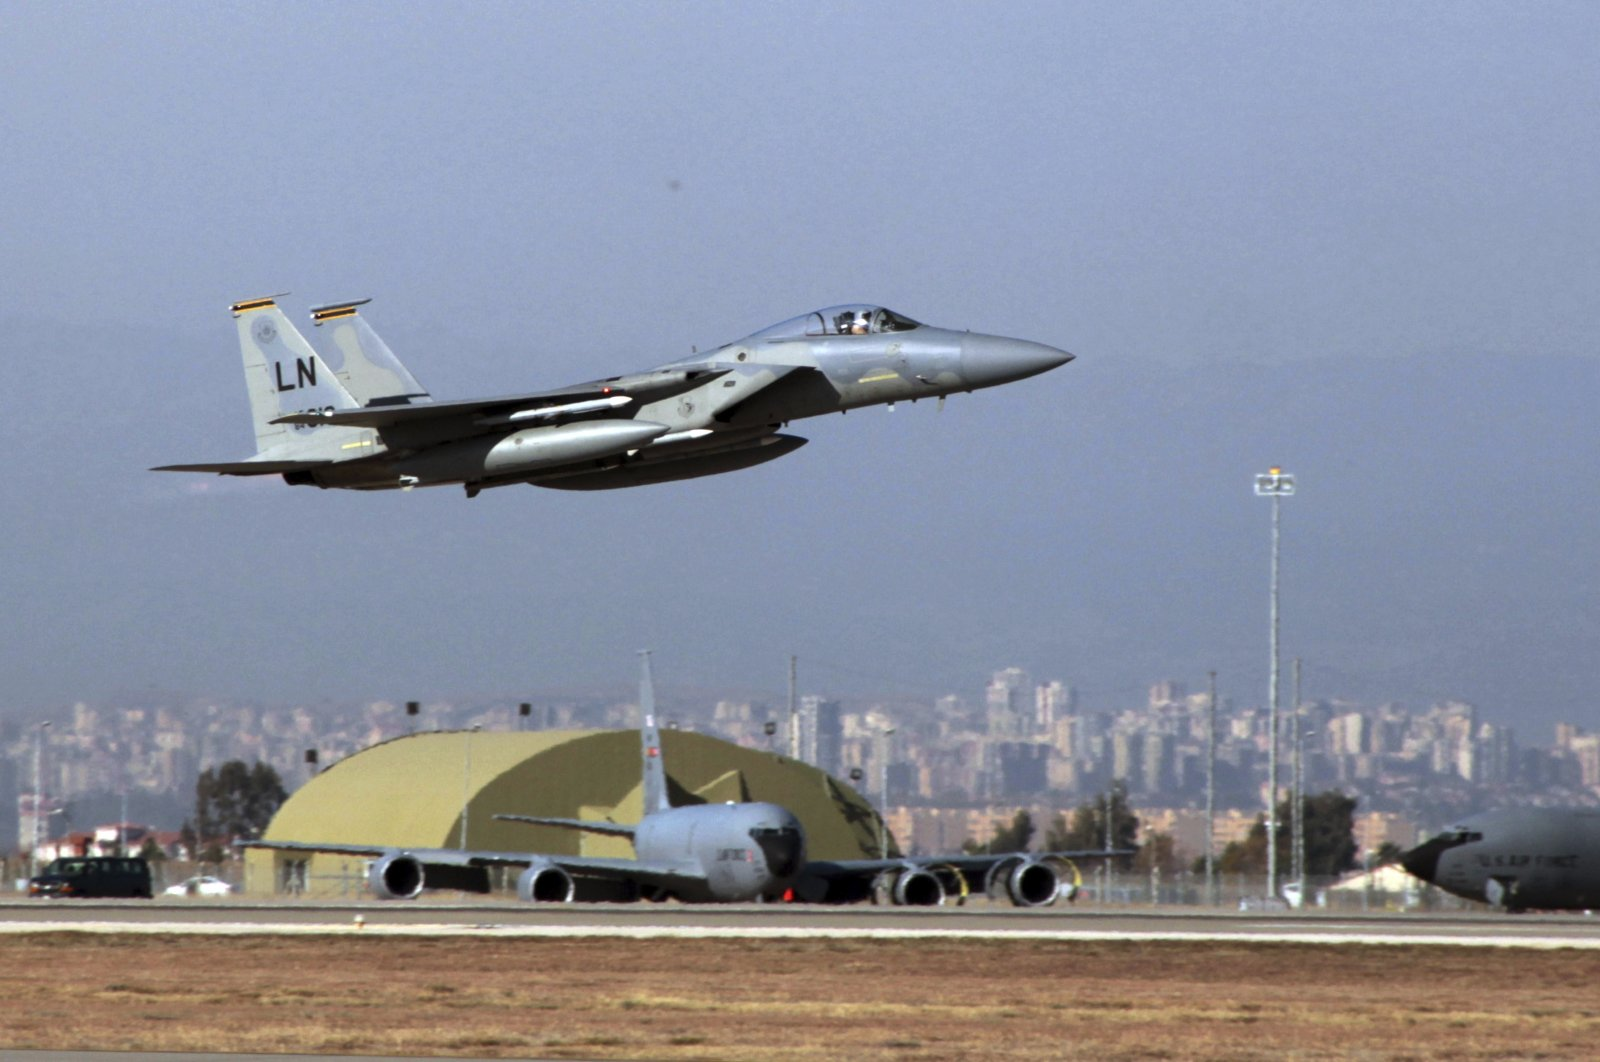 A U.S. Air Force F-15 fighter jet takes off from Incirlik Air Base near Adana, southern Turkey on Dec. 15, 2015. (AP File Photo)